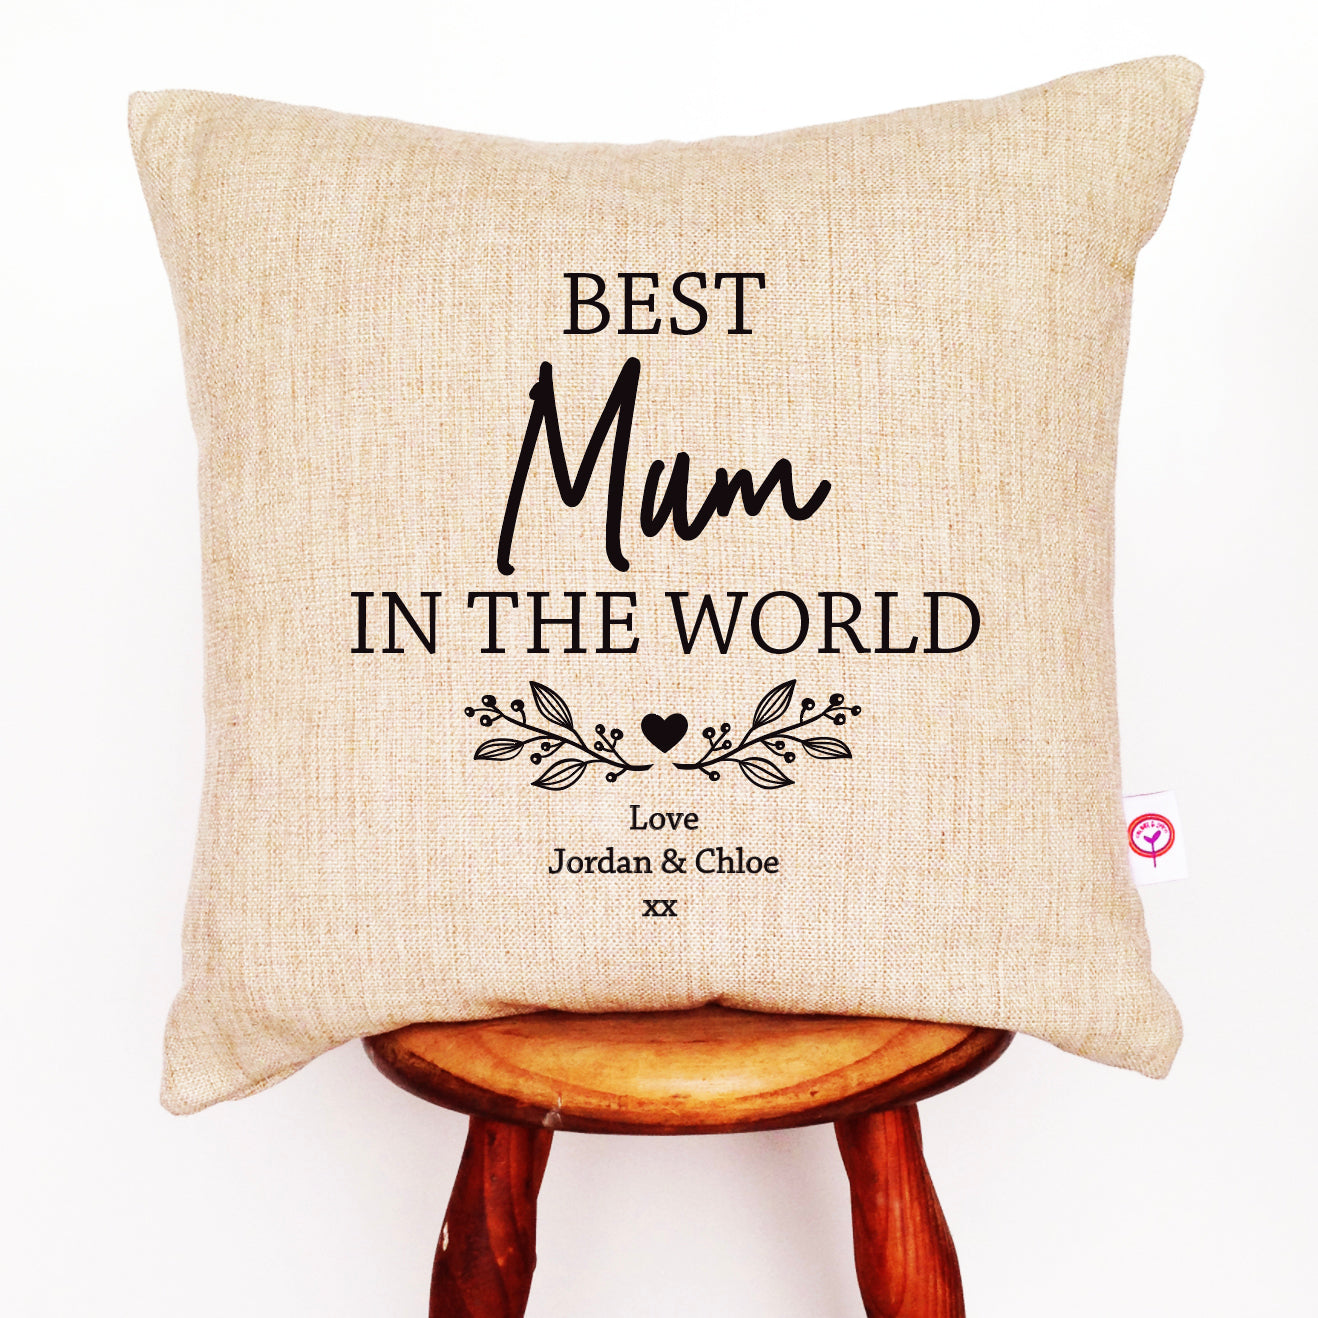 Best Mum In The World Cushion Cover